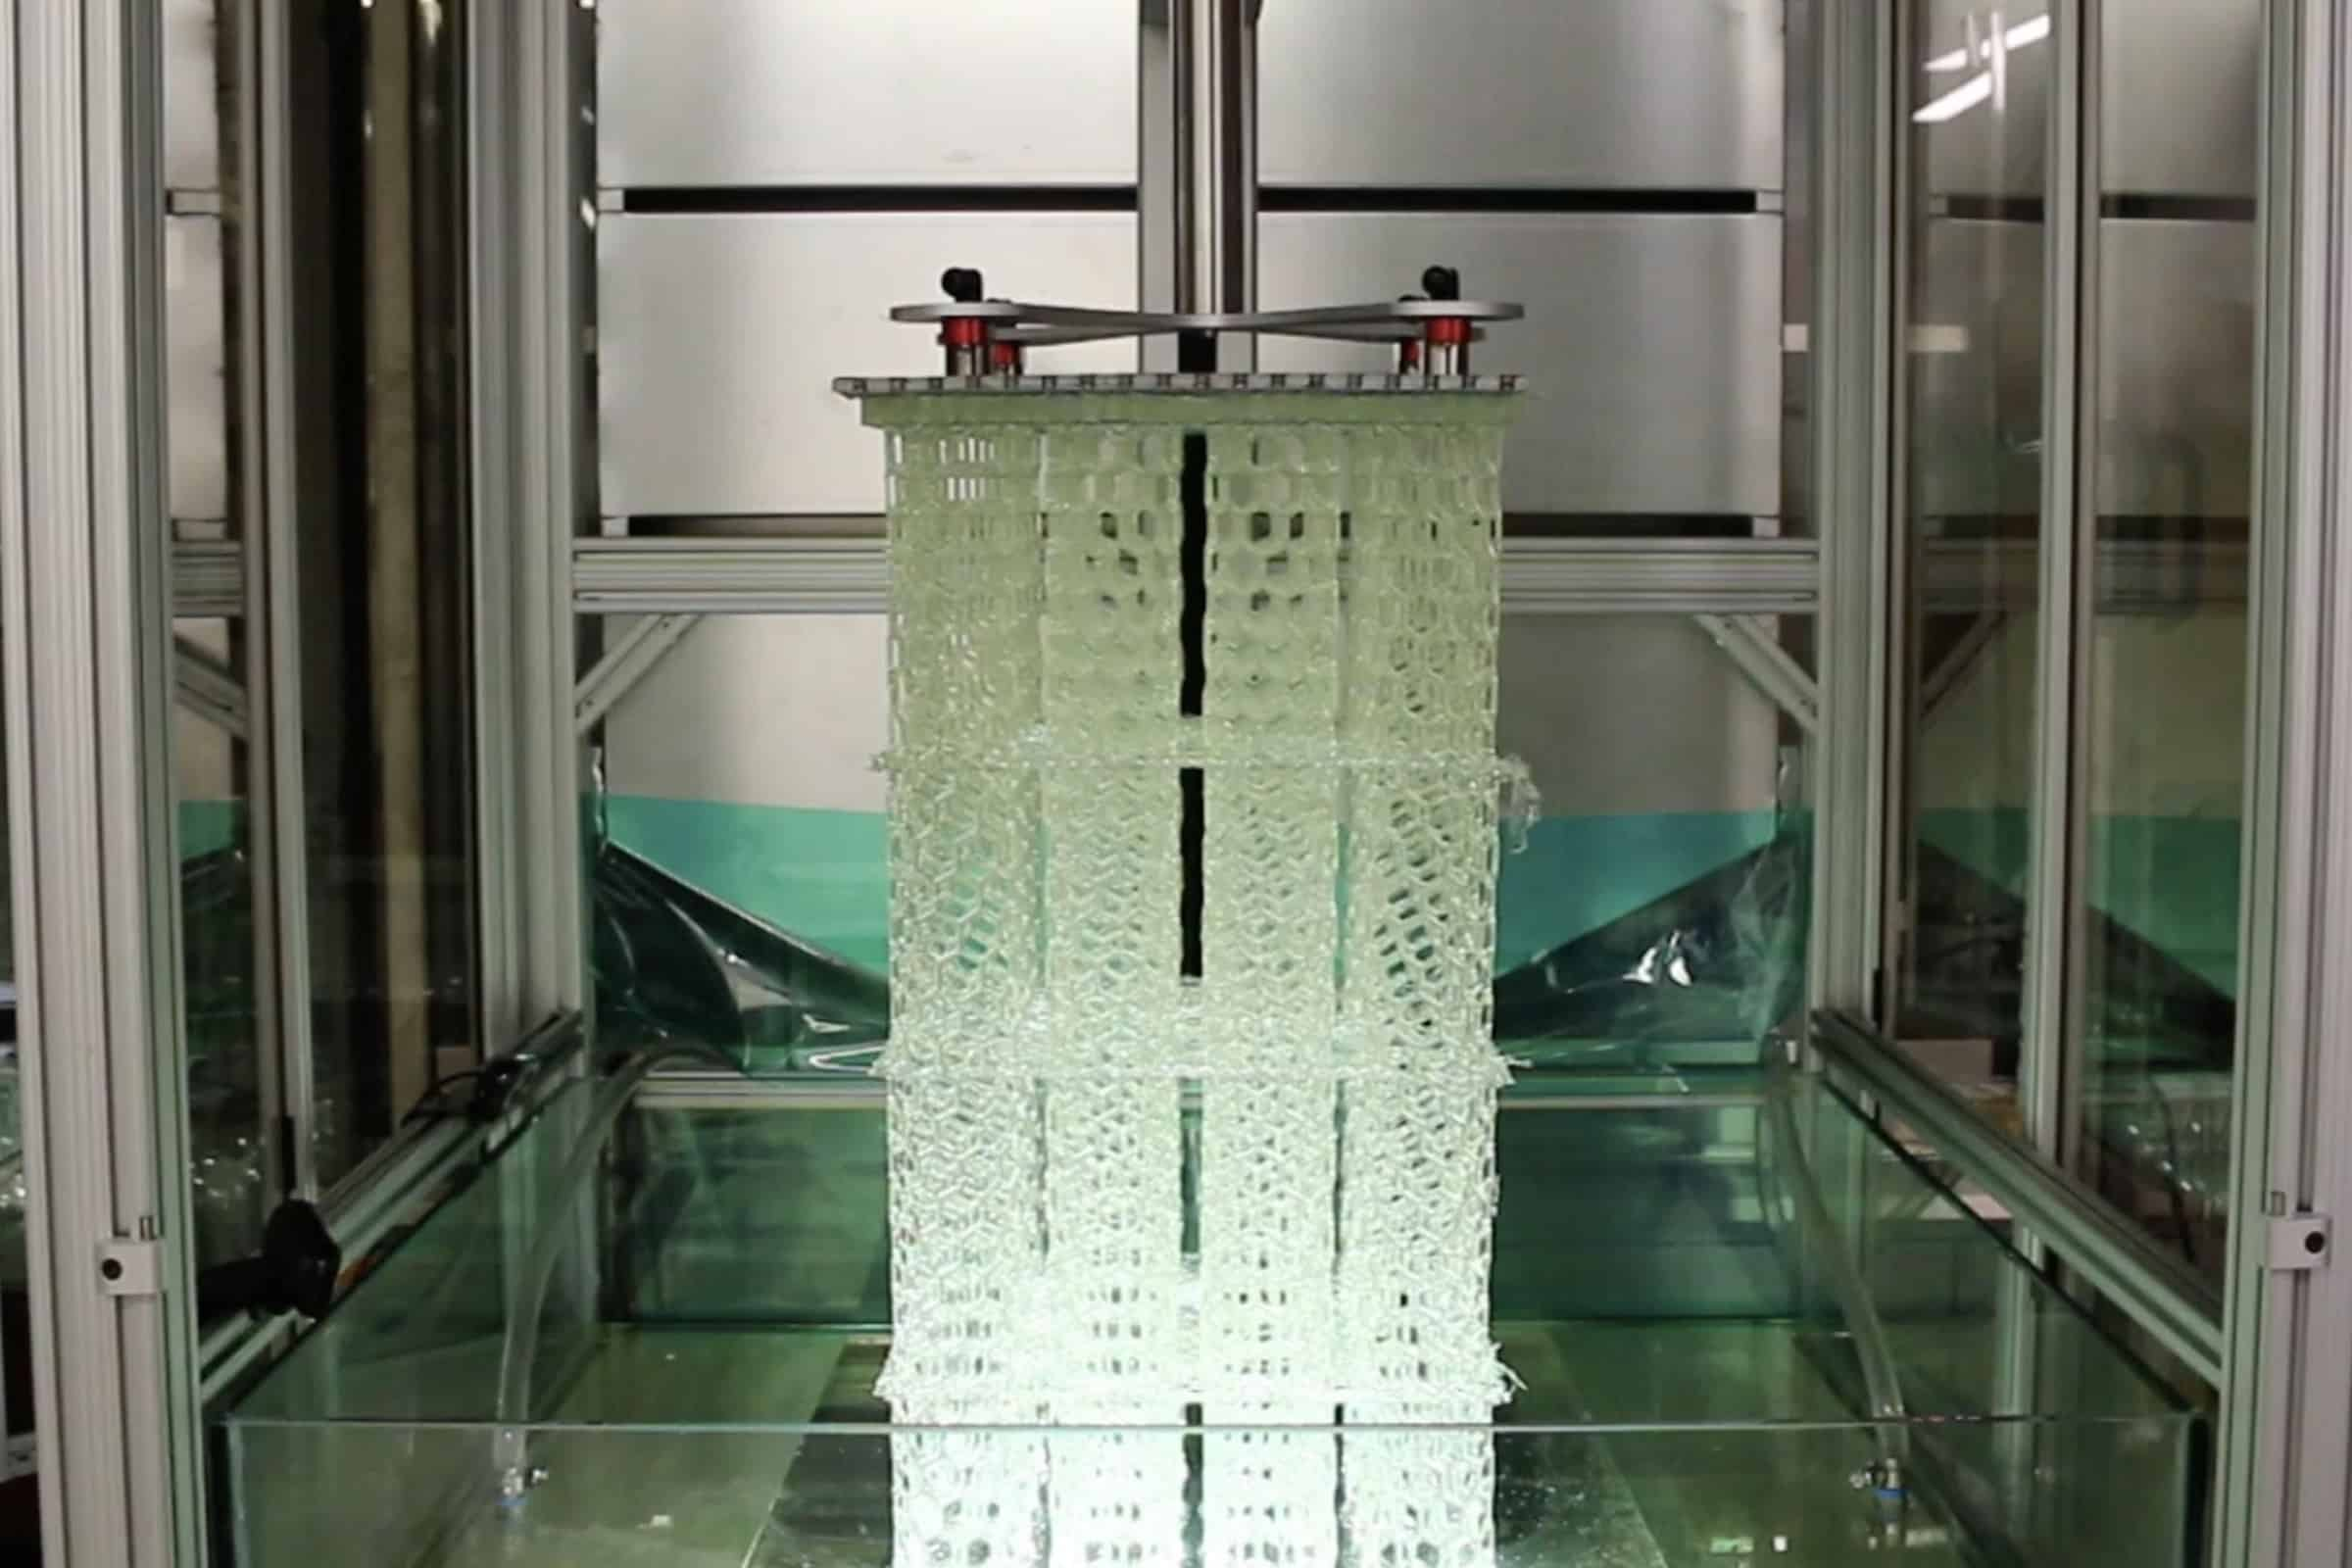 A 3D printer by Azul 3D, founded by three Northwestern University researchers, can print production-grade, human-sized objects in just a few hours.